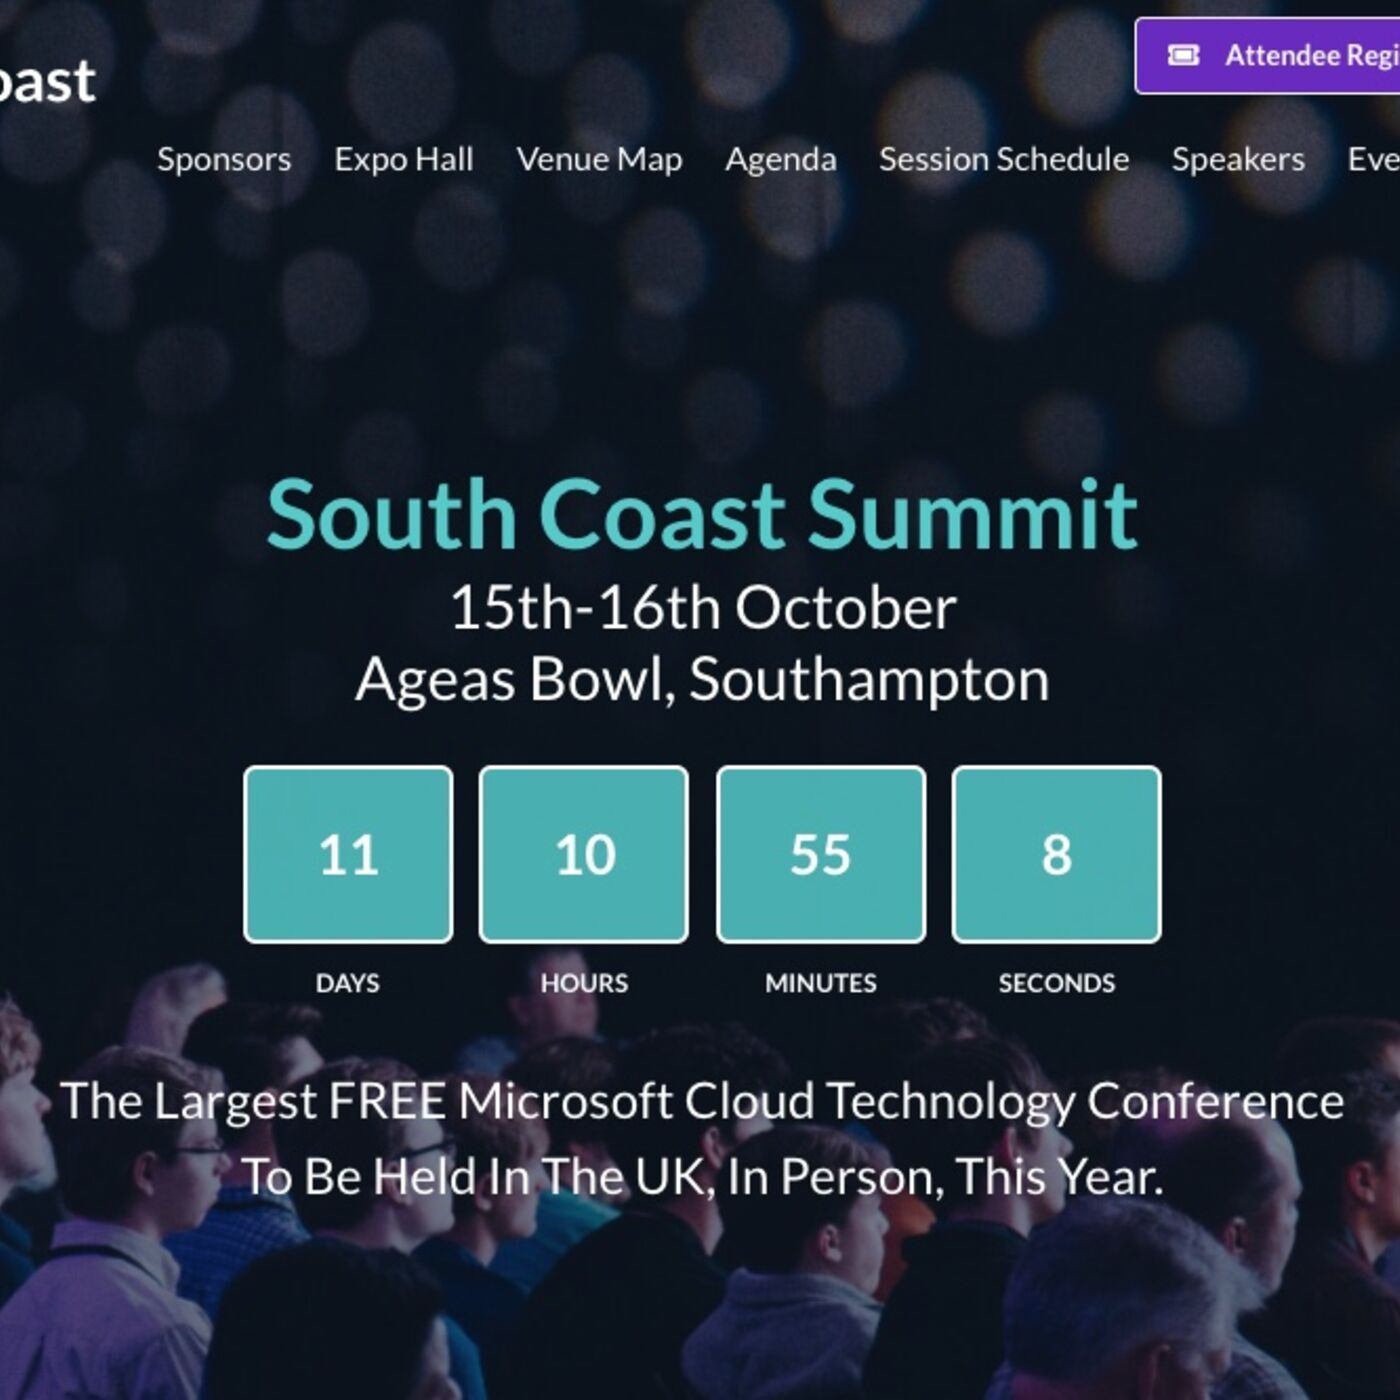 Show 43 - Part 2: Our picks for South Coast Summit